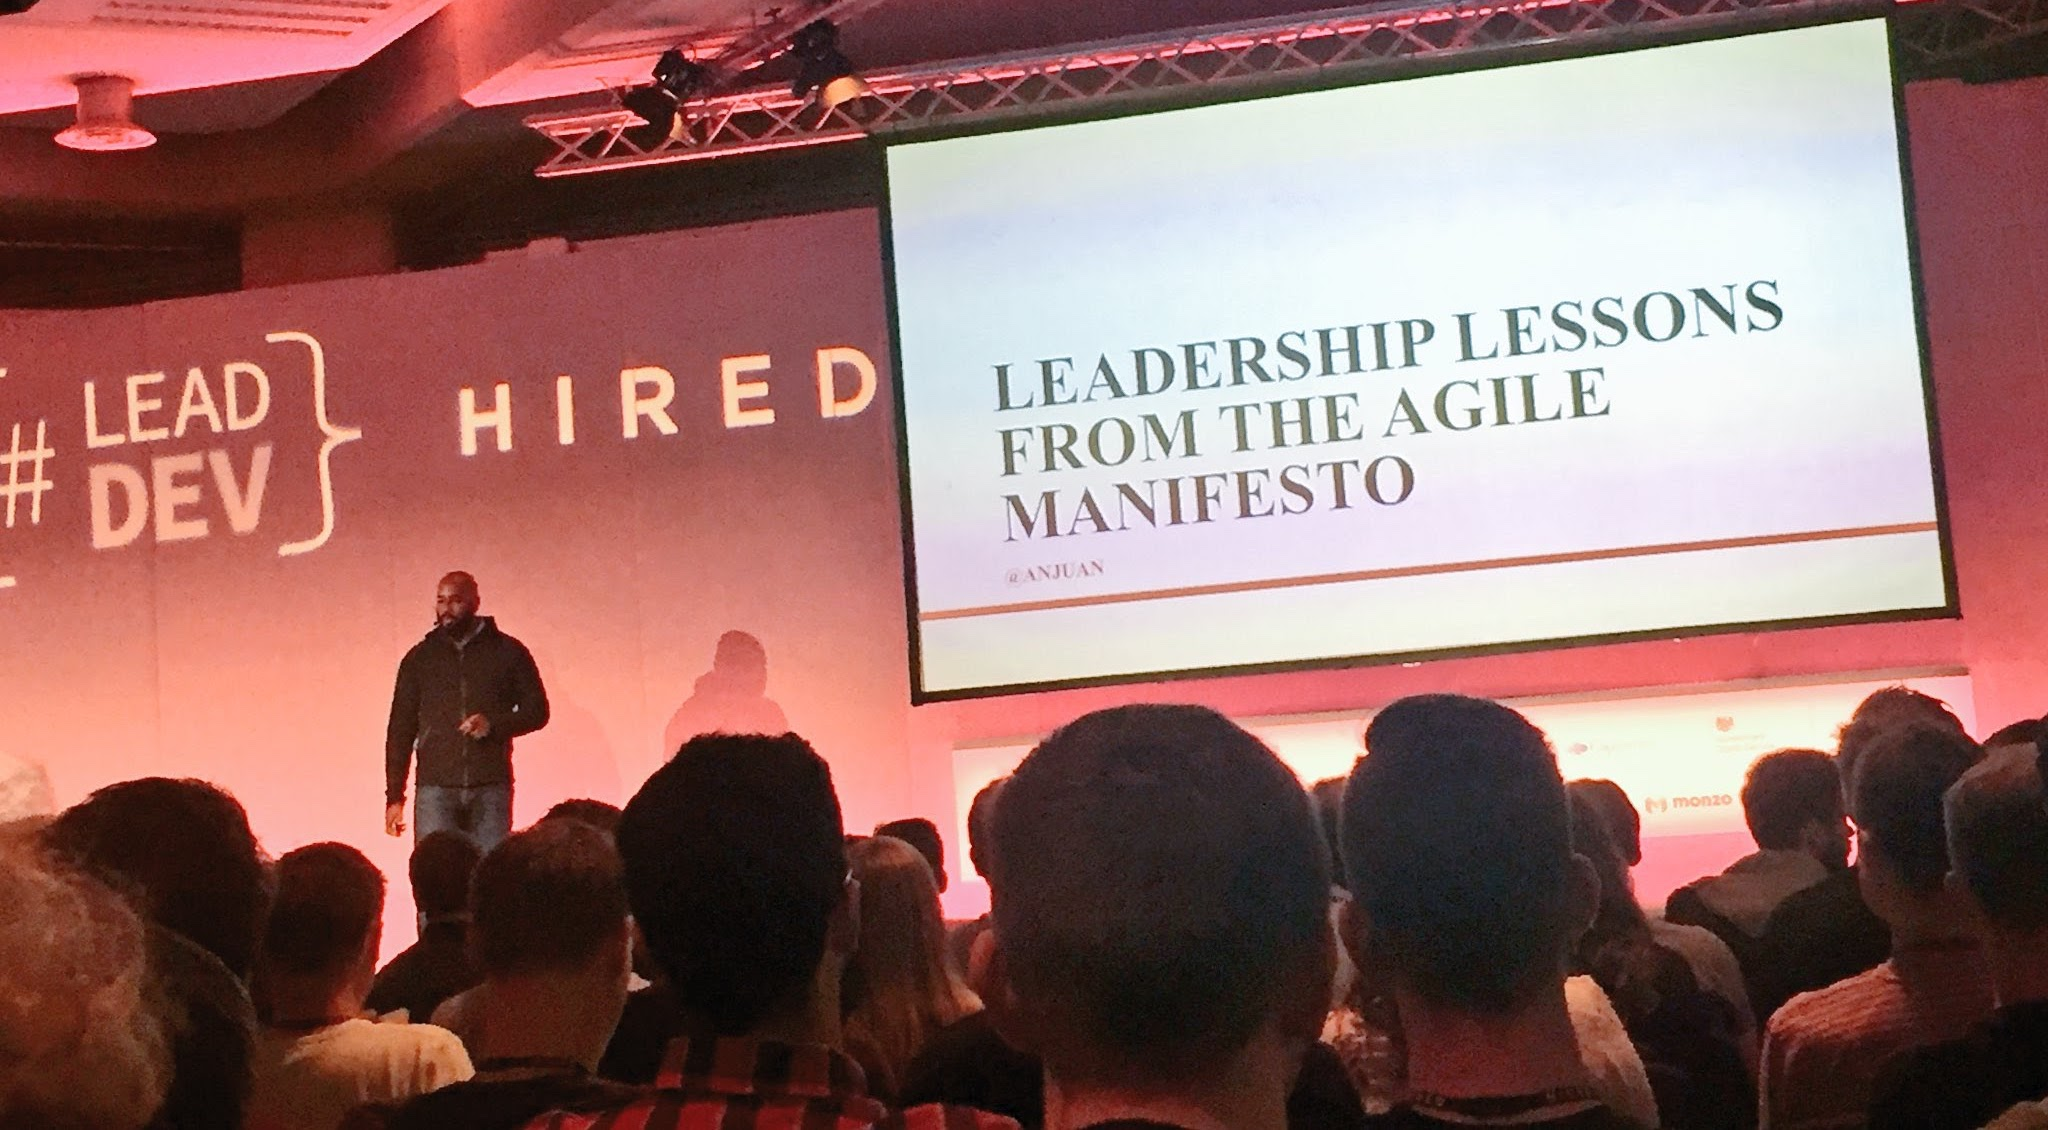 Giving my Leadership Lessons from the Agile Manifesto talk at The Lead Developer UK in London.